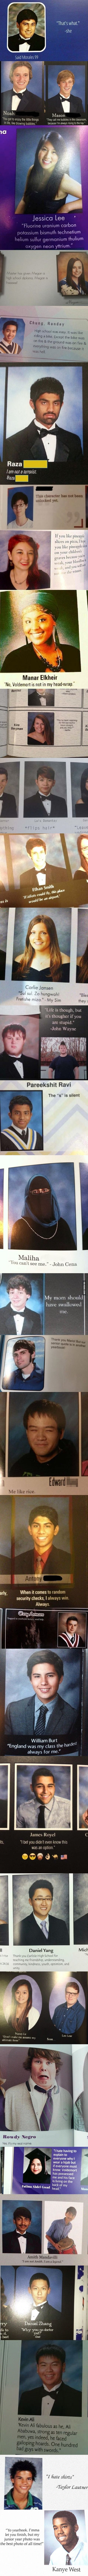 Humor Discover Humor Discover Some of the Best Yearbook Quotes of All Time well Probably Best Yearbook Quotes Lol Funny Posts Best Funny Pictures The Funny Book Funny Laugh Out Loud I Laughed Laughter Stupid Funny Memes, Funny Relatable Memes, Haha Funny, Funny Posts, Funny Quotes, Funny Stuff, Funny Drunk, Drunk Texts, Funny Senior Quotes